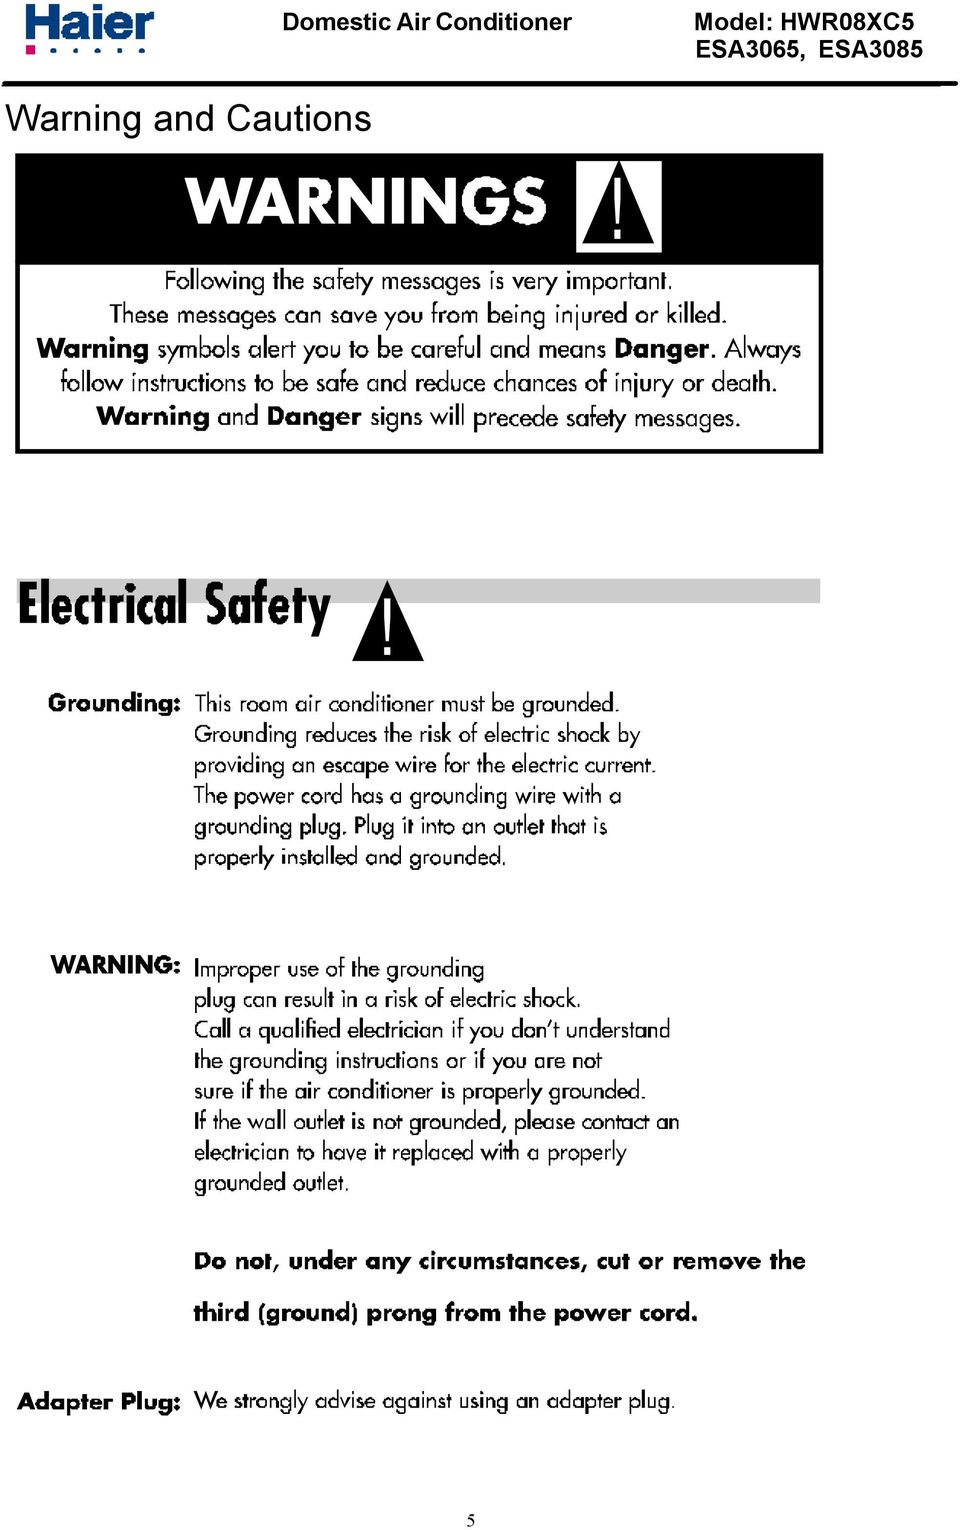 Haier Window Type Air Conditioner Service Manual Part Ac Wiring Diagram Cautions